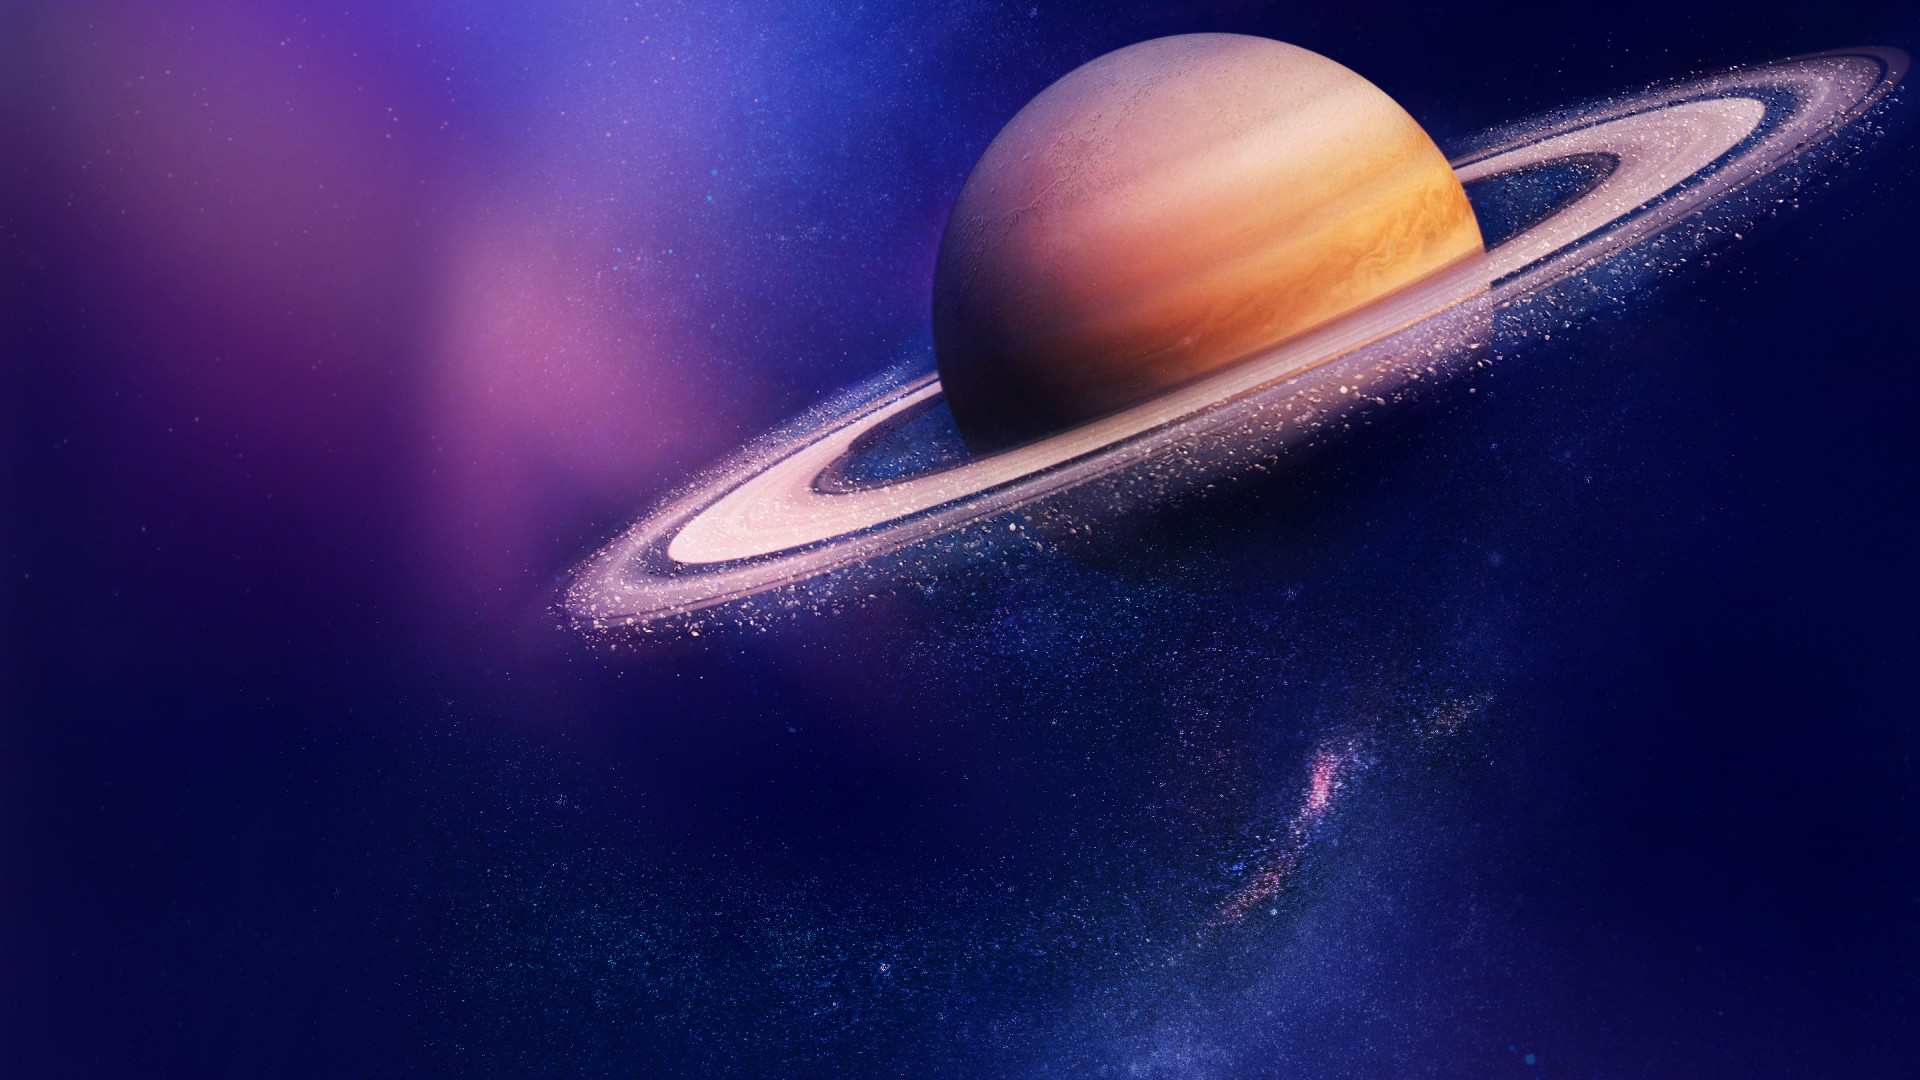 10 Hd Saturn Planet Wallpapers